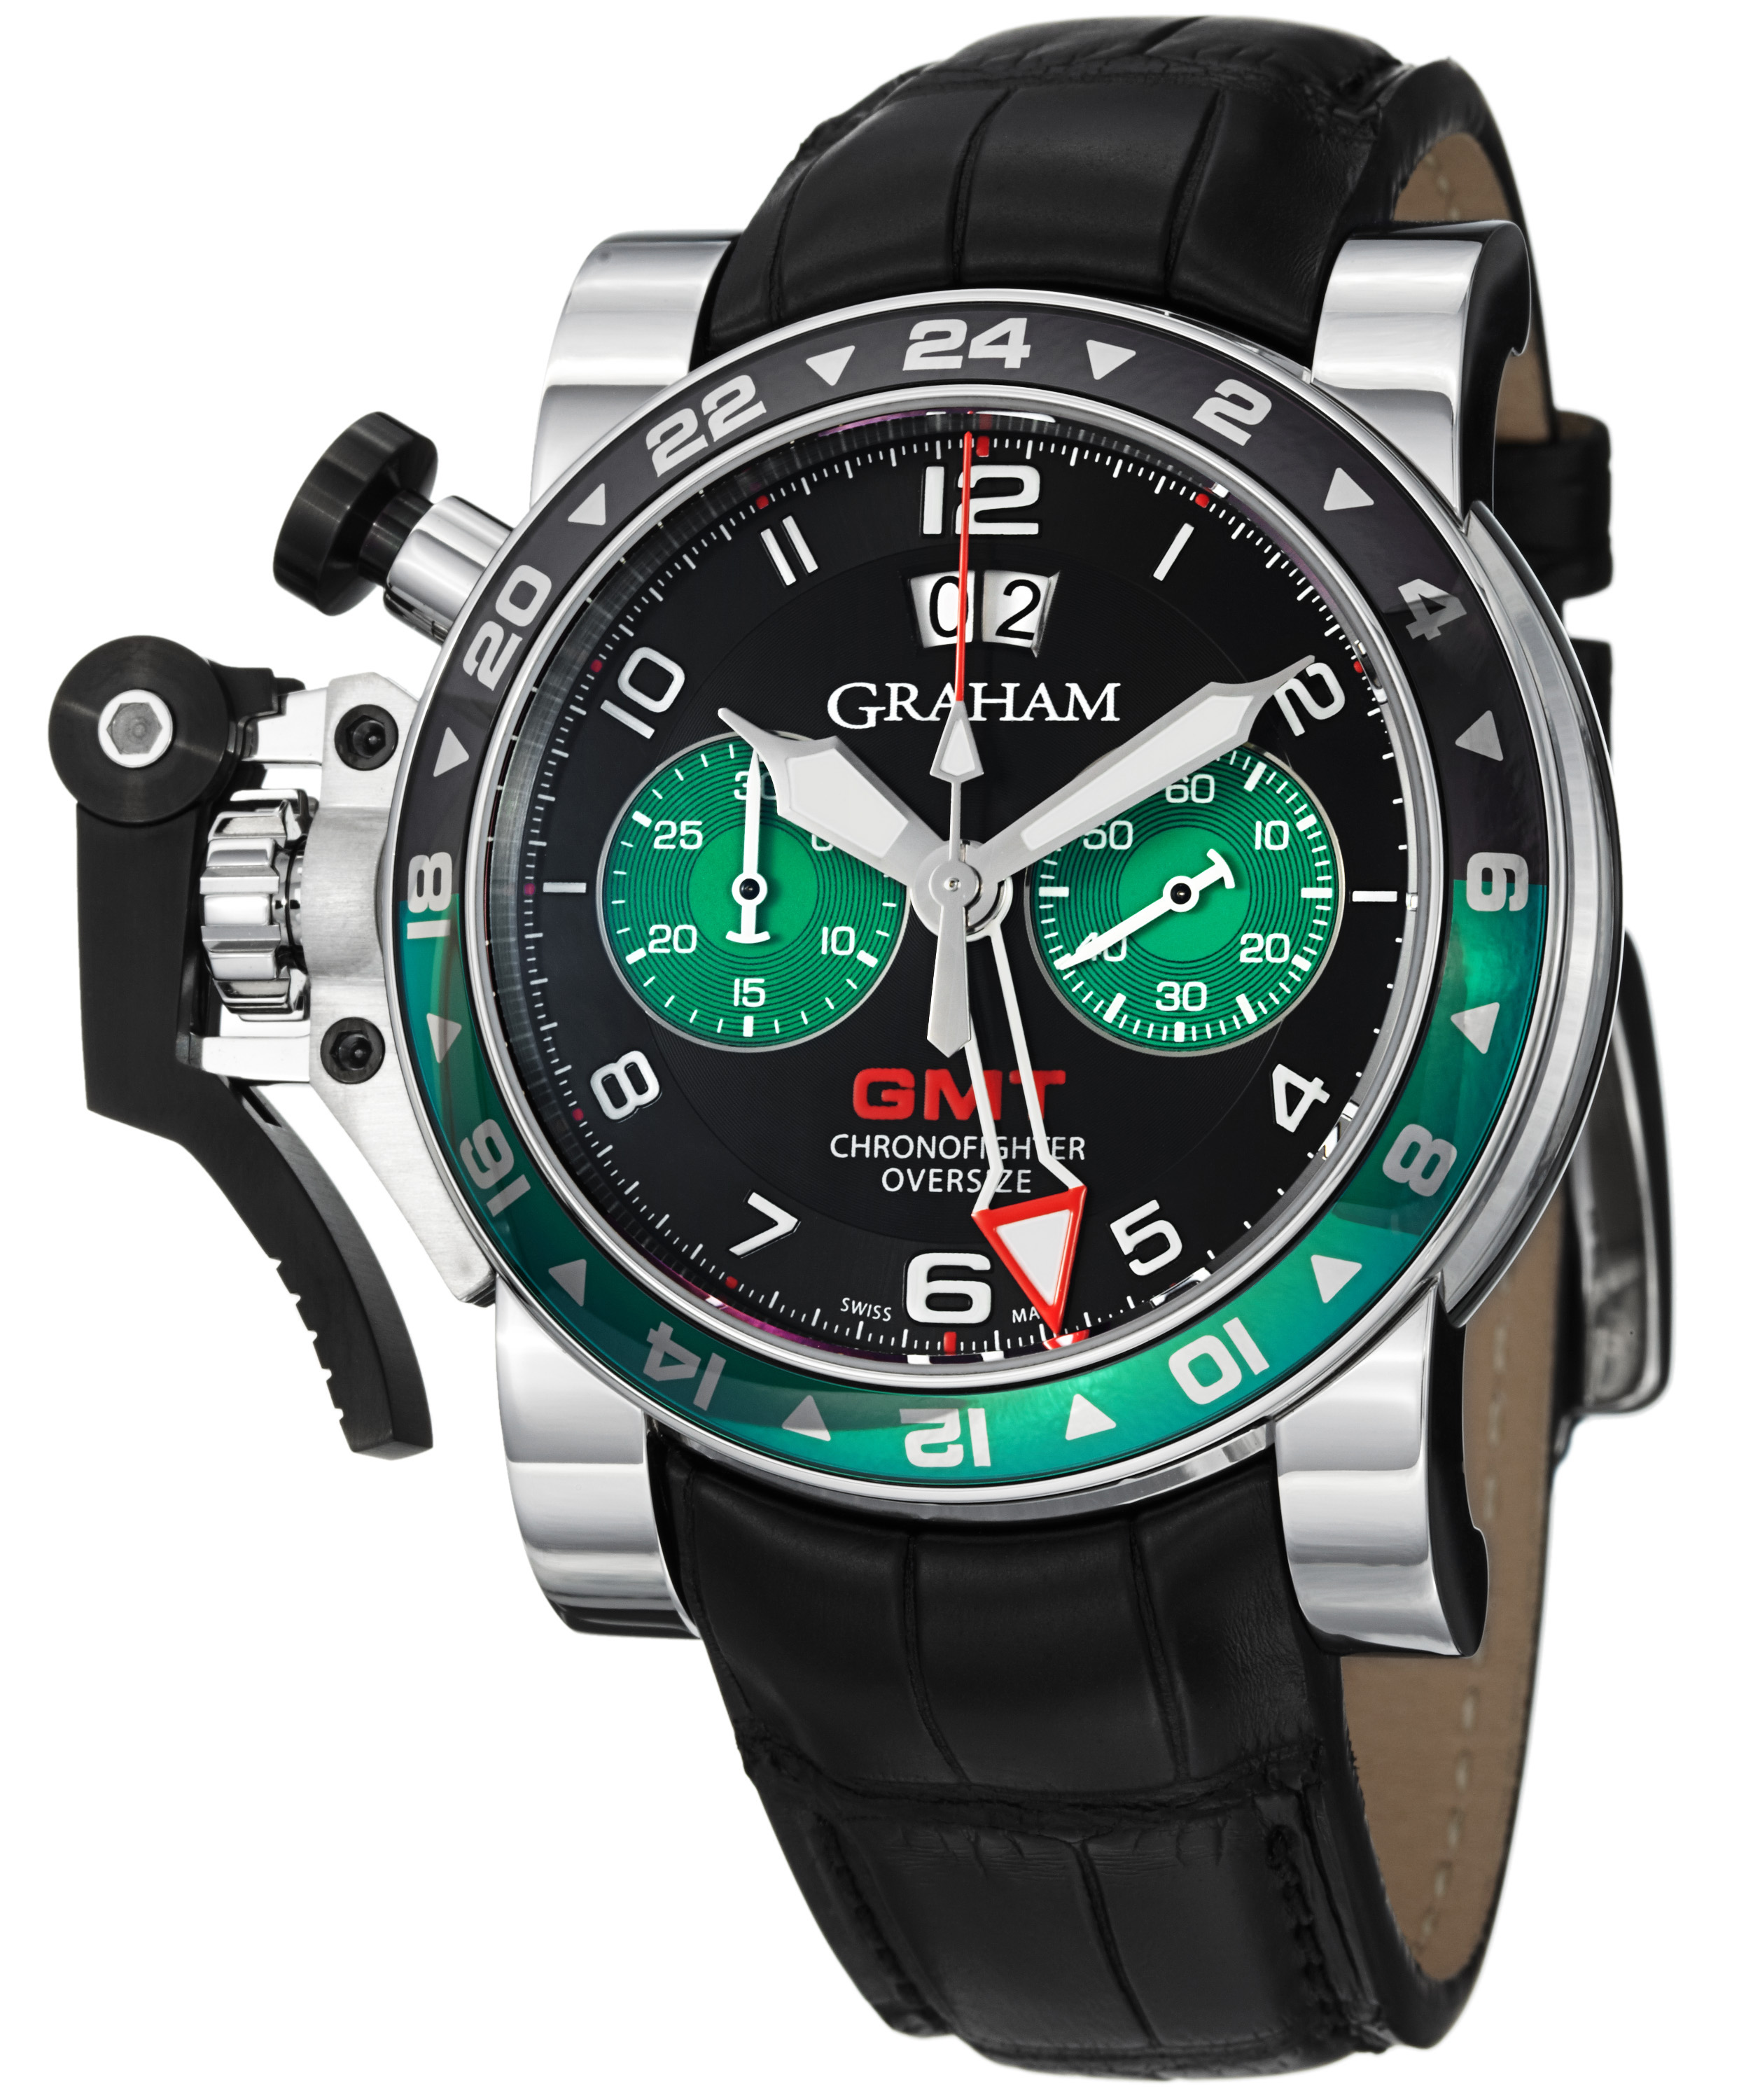 gr watches stockist quilt graham watch collections black chronofighter leather target official uk